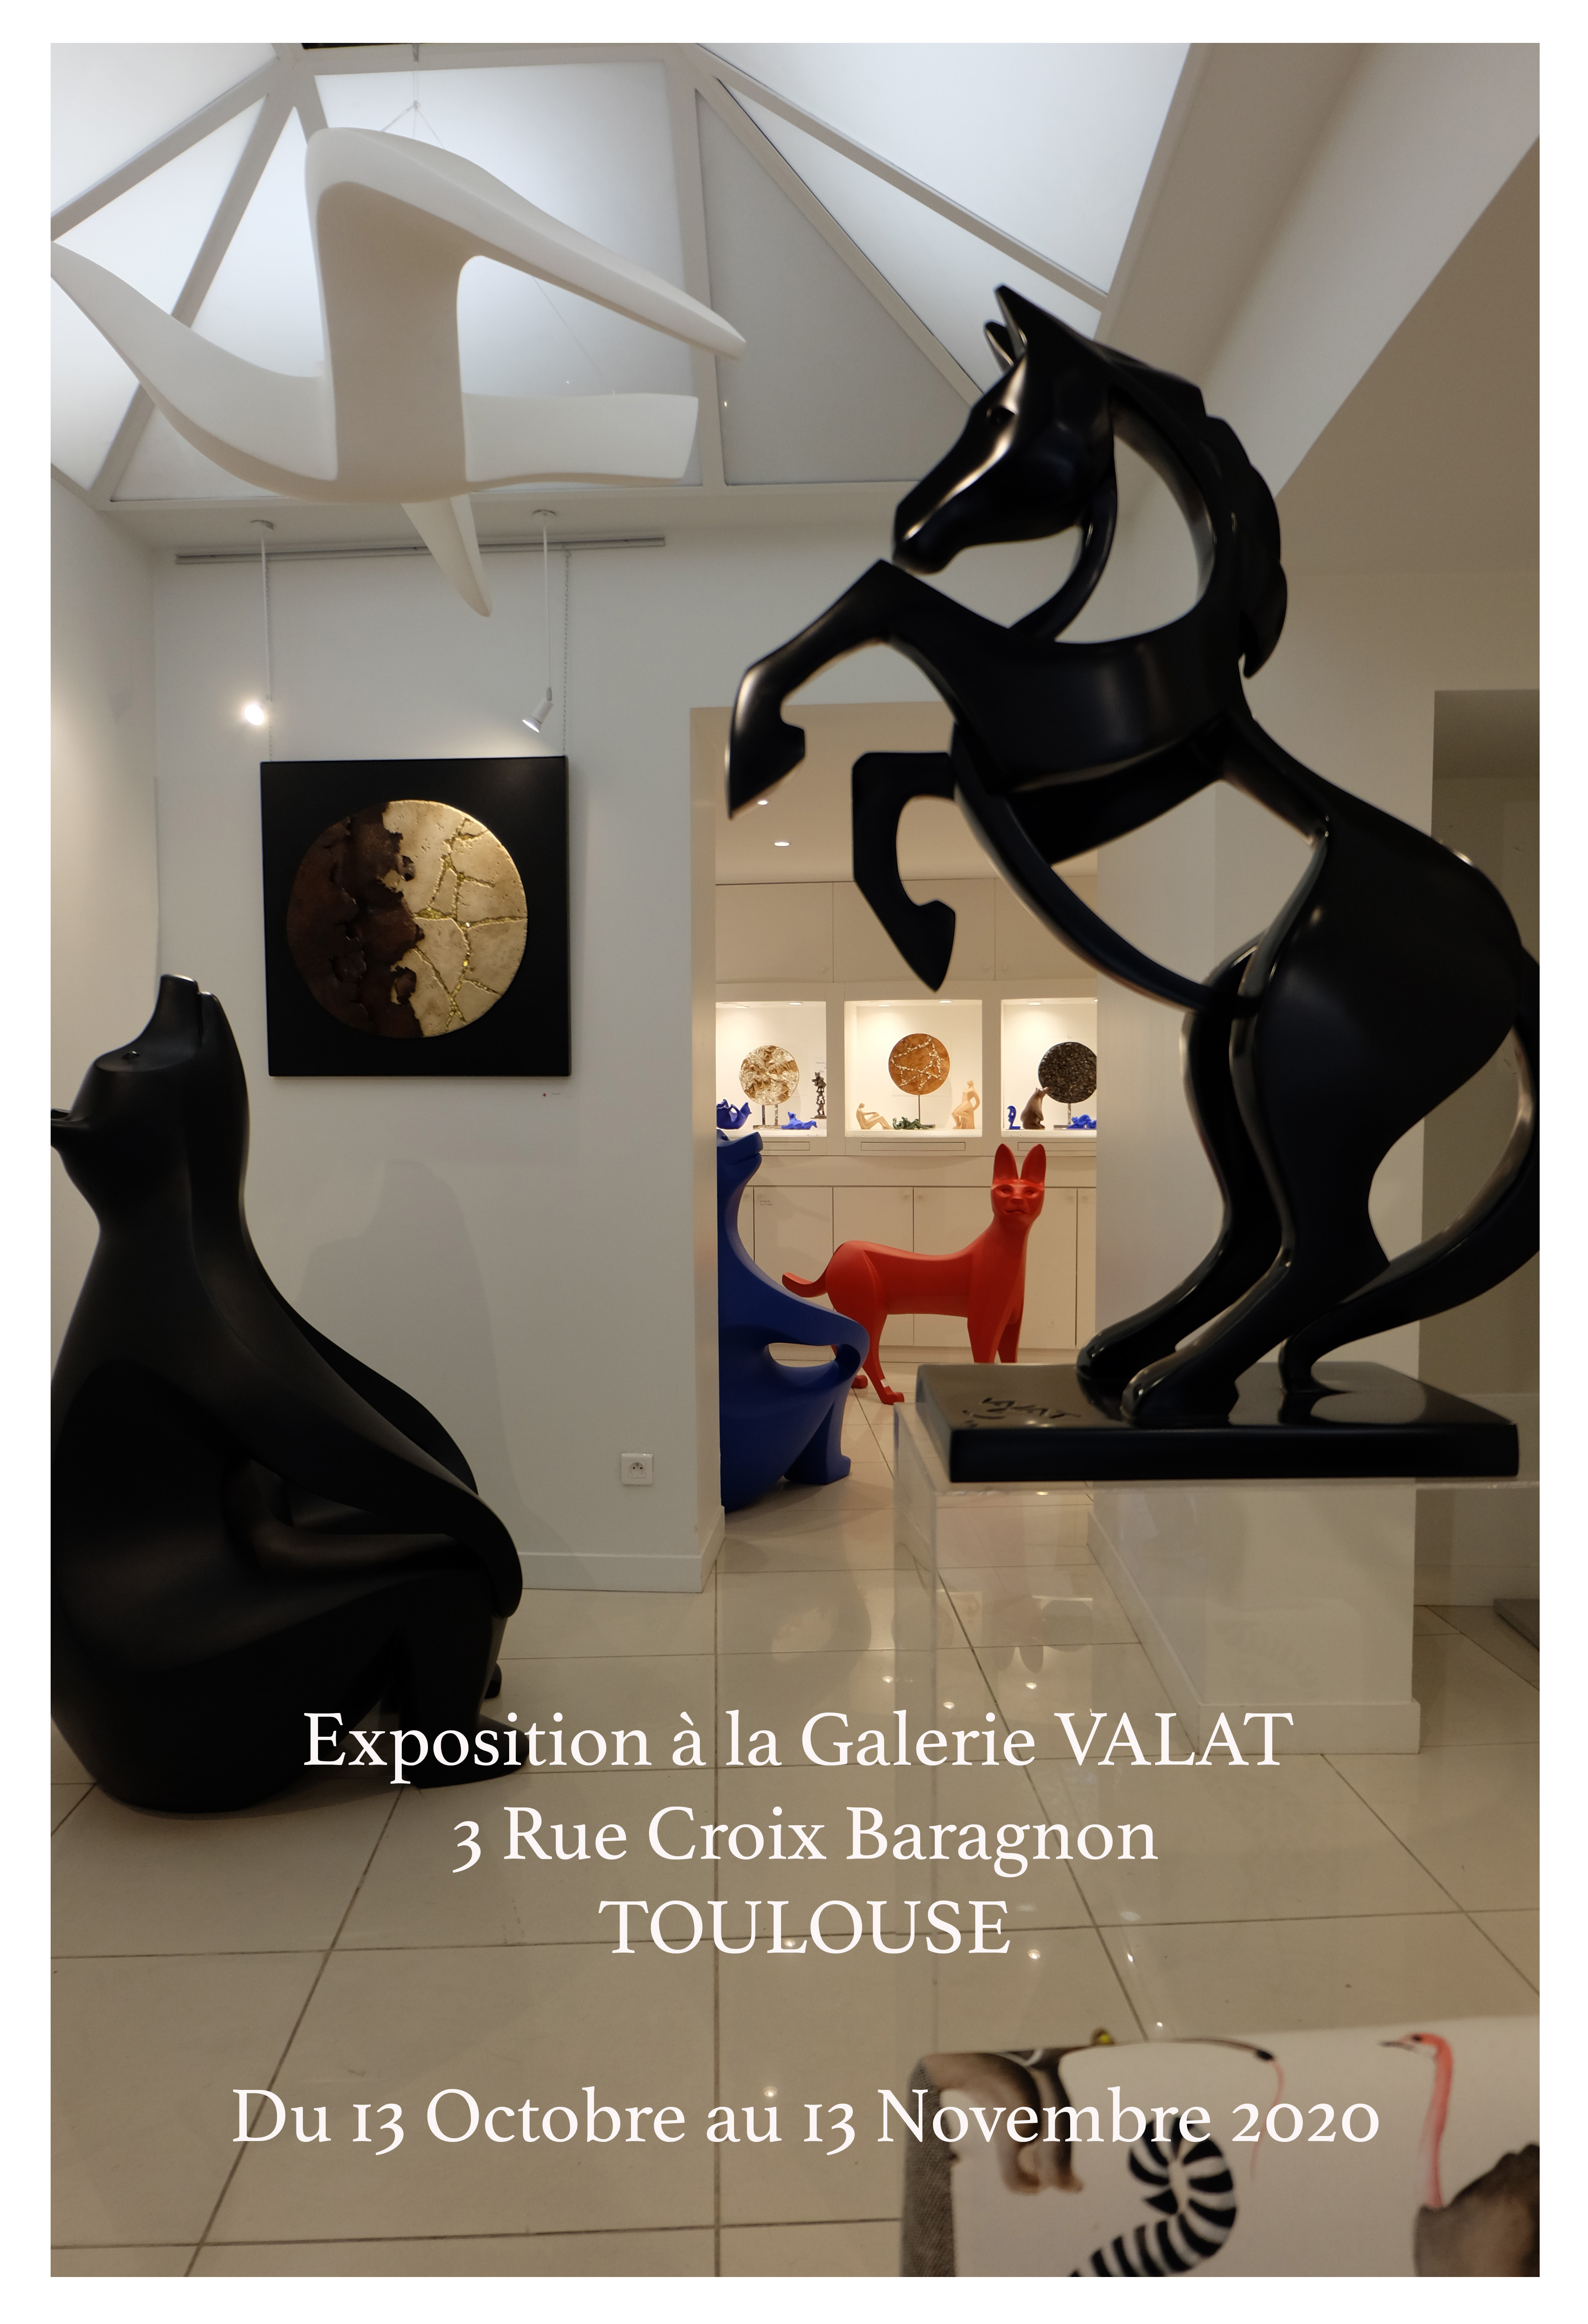 Affiche Exposition Galerie Valat